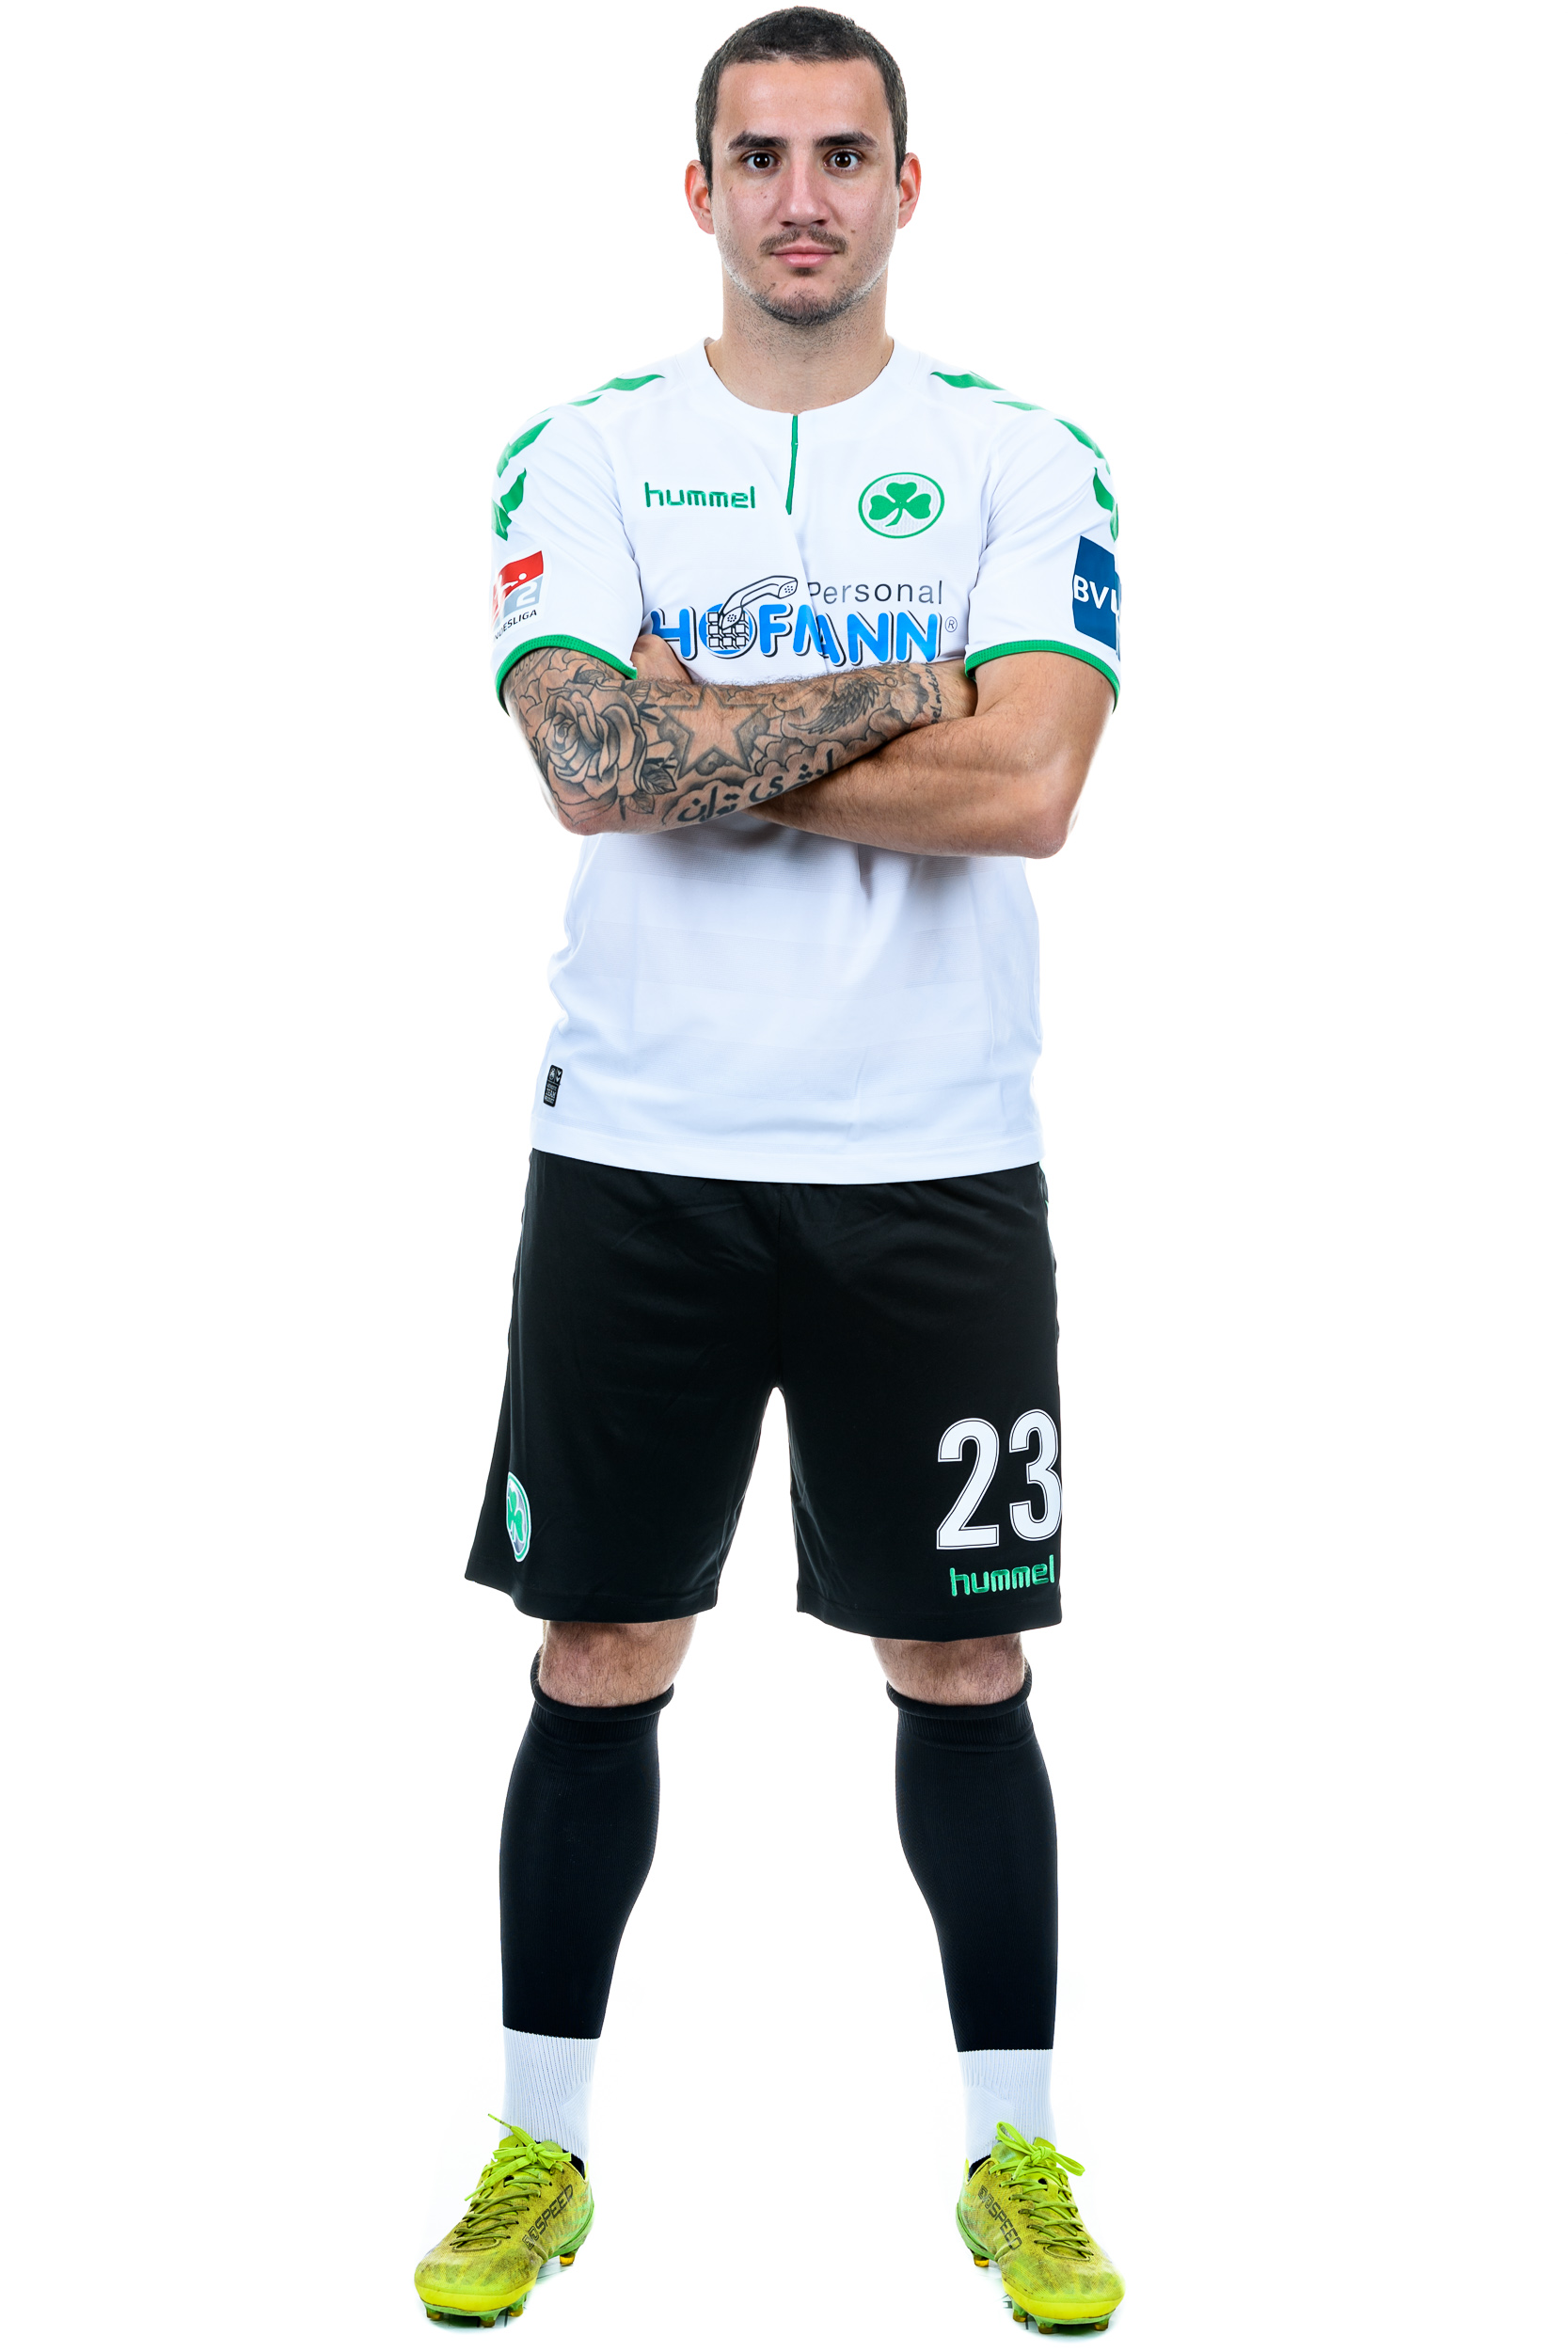 Copy of SpVgg Greuther Fuerth - Team Presentation for DFL